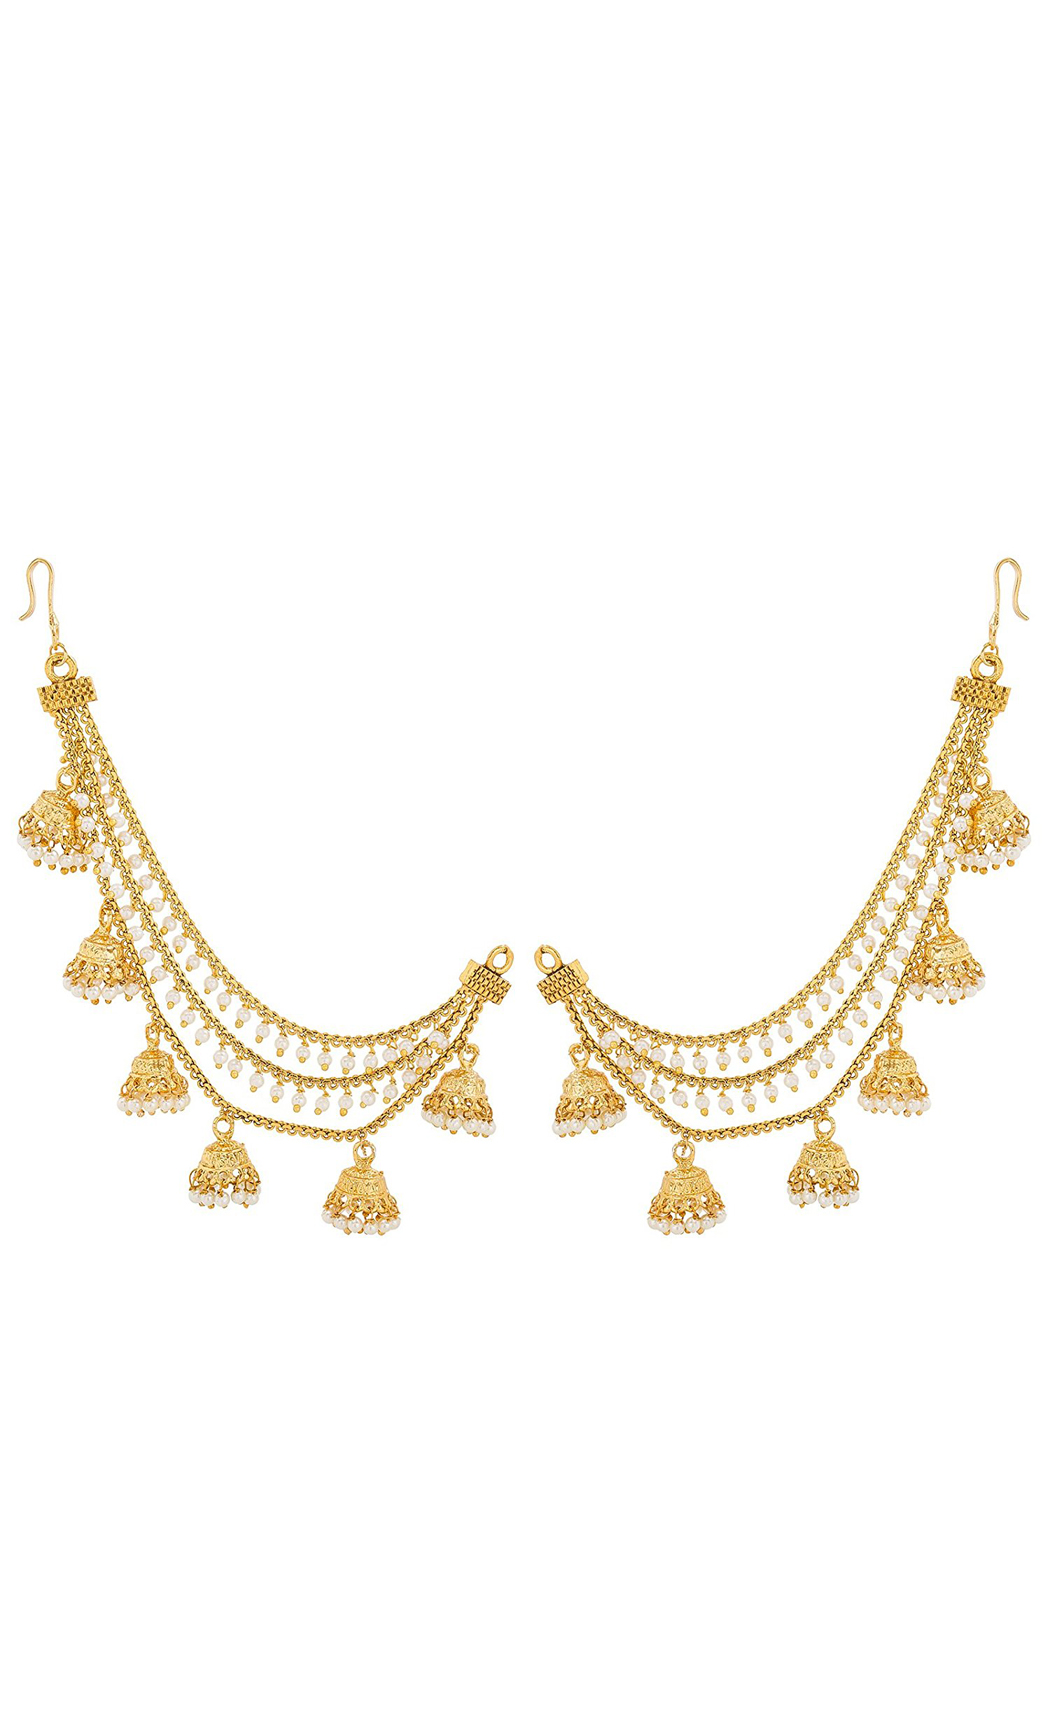 Gold Plated Earring Chains with Small Jhumkas and Pearls | Wedding Earrings | Buy Online